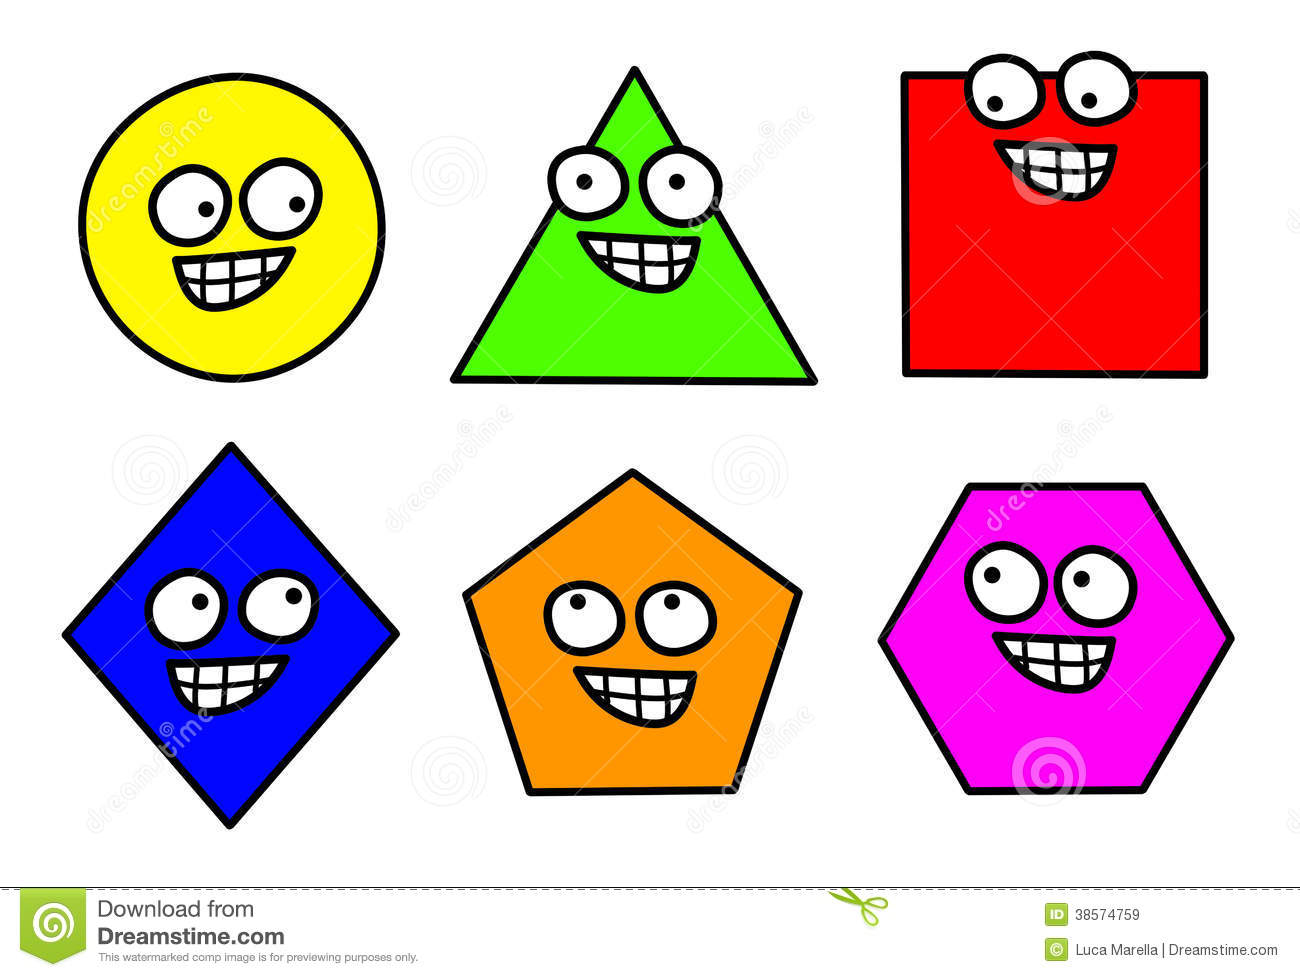 Geometry Shapes Clipart.